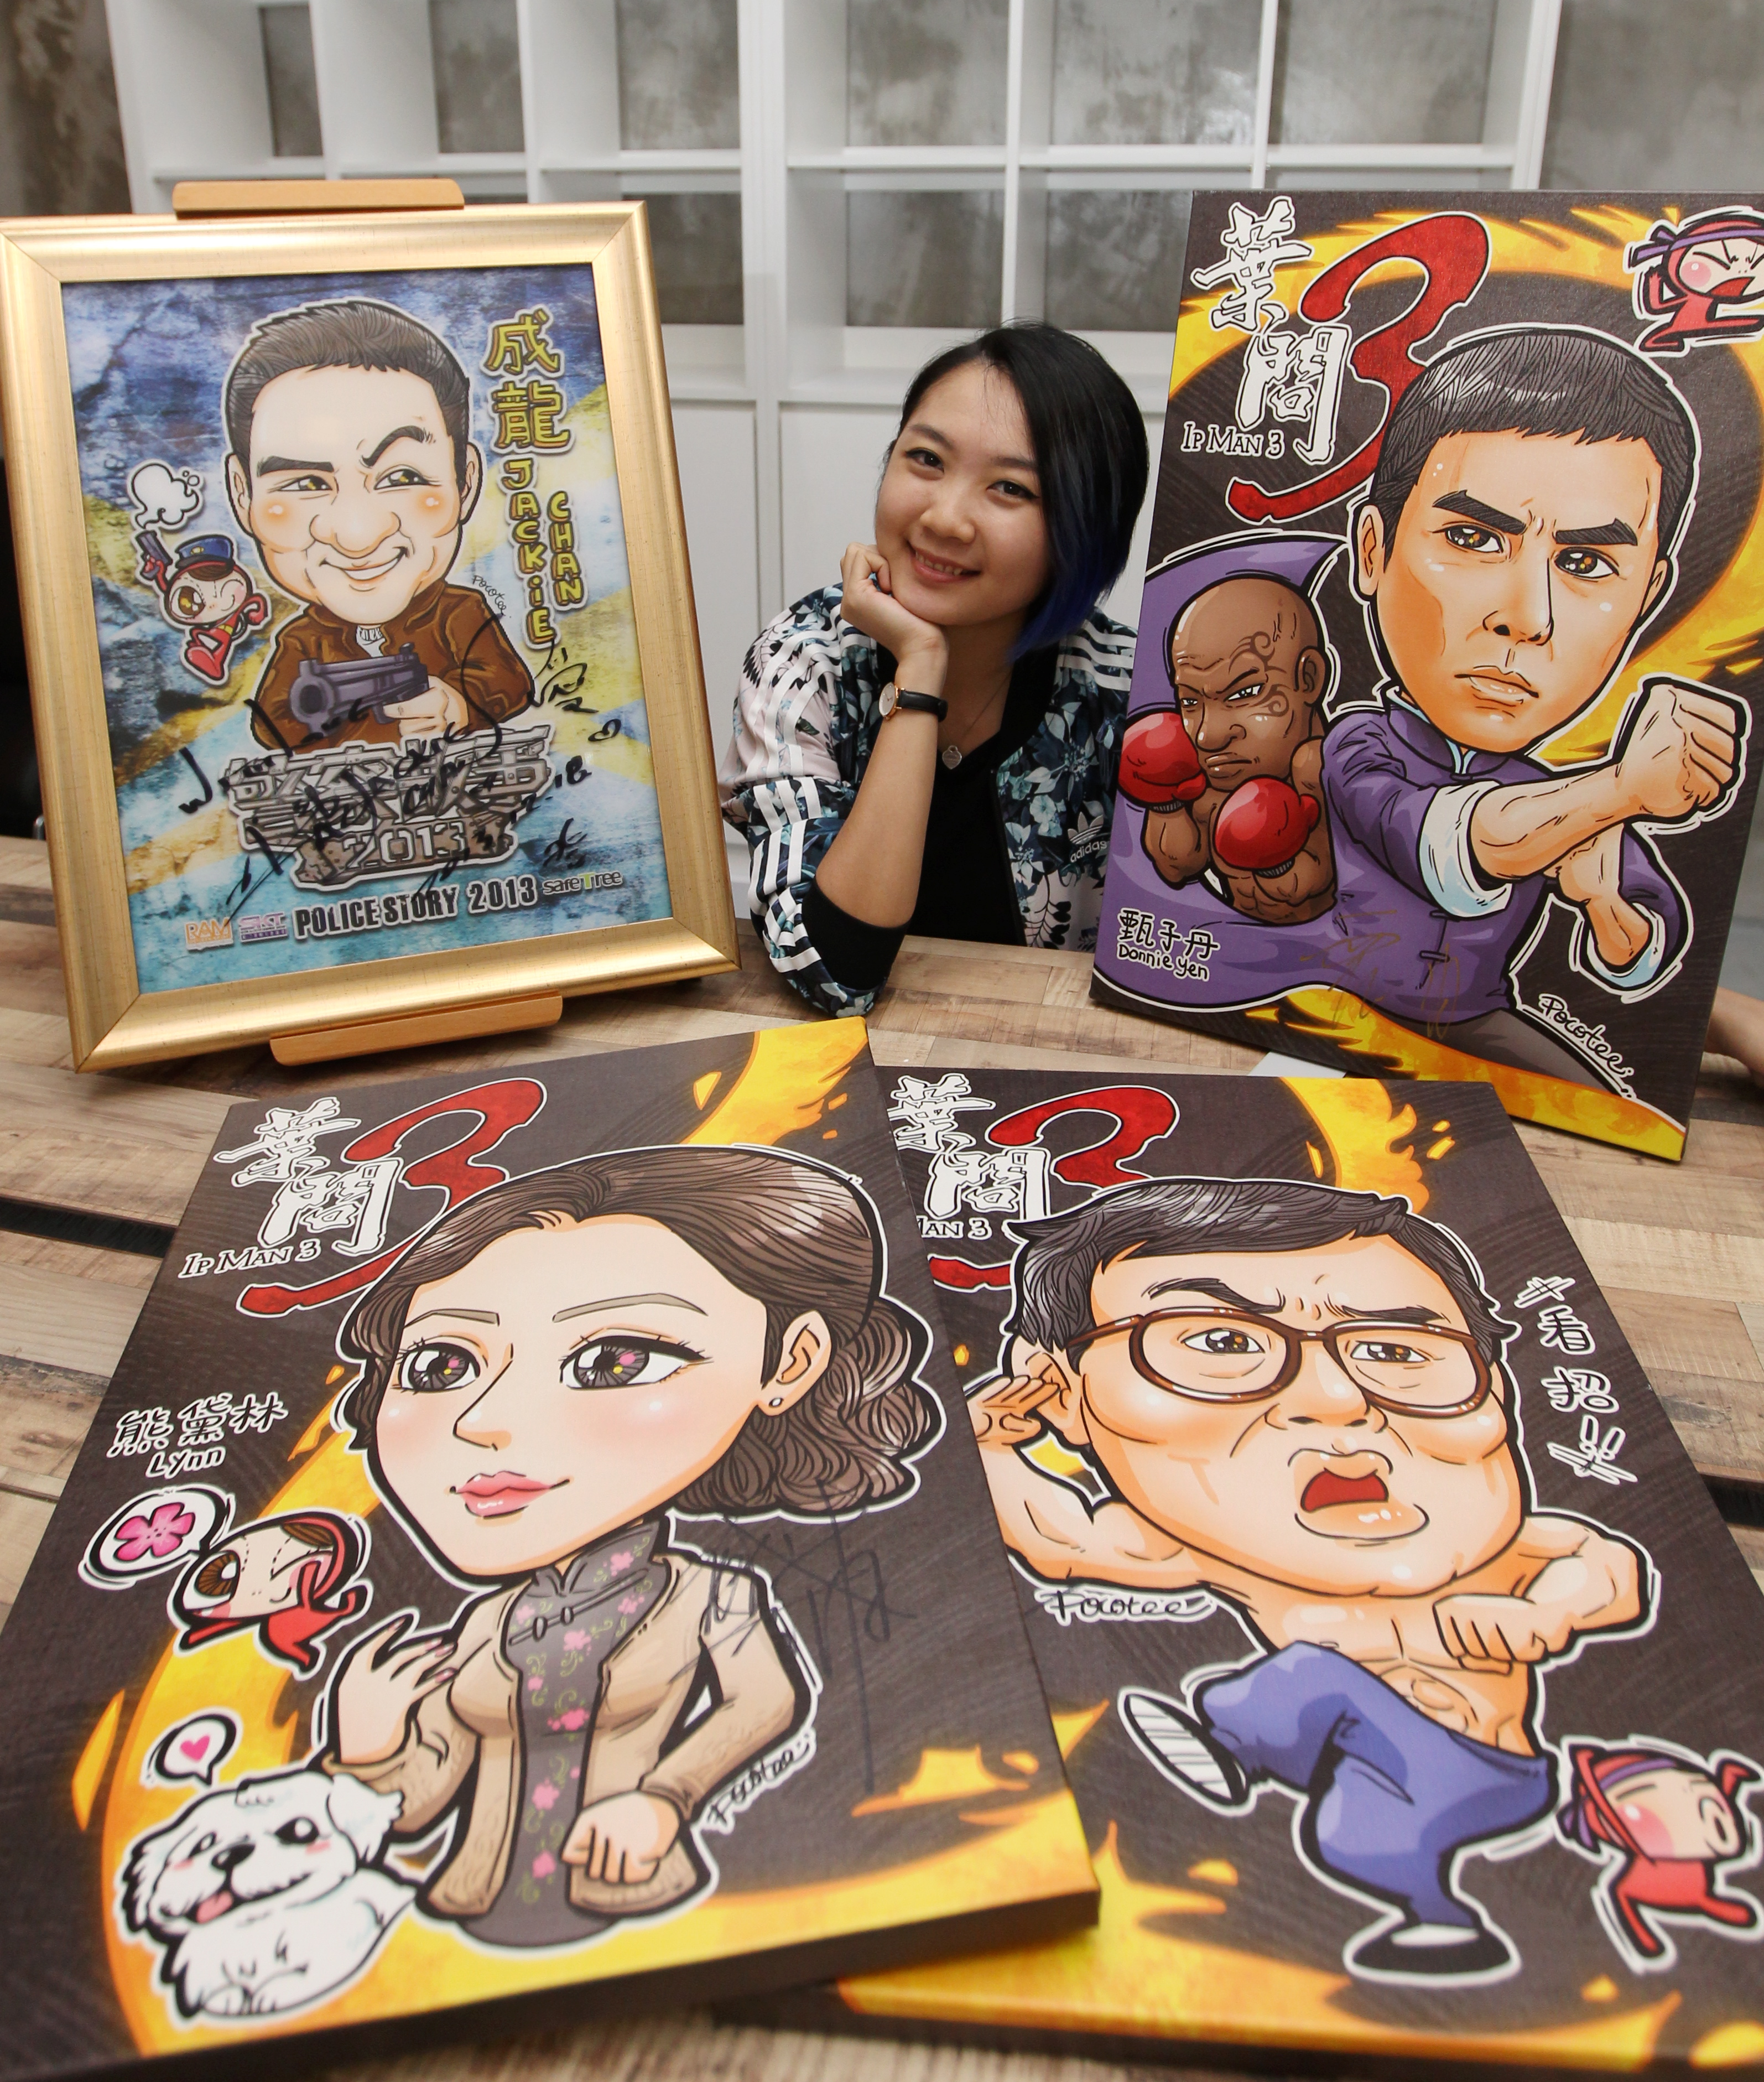 Loh mostly draws posters for Hong Kong movies because, according to her, Malaysia hasn't caught the trend yet.